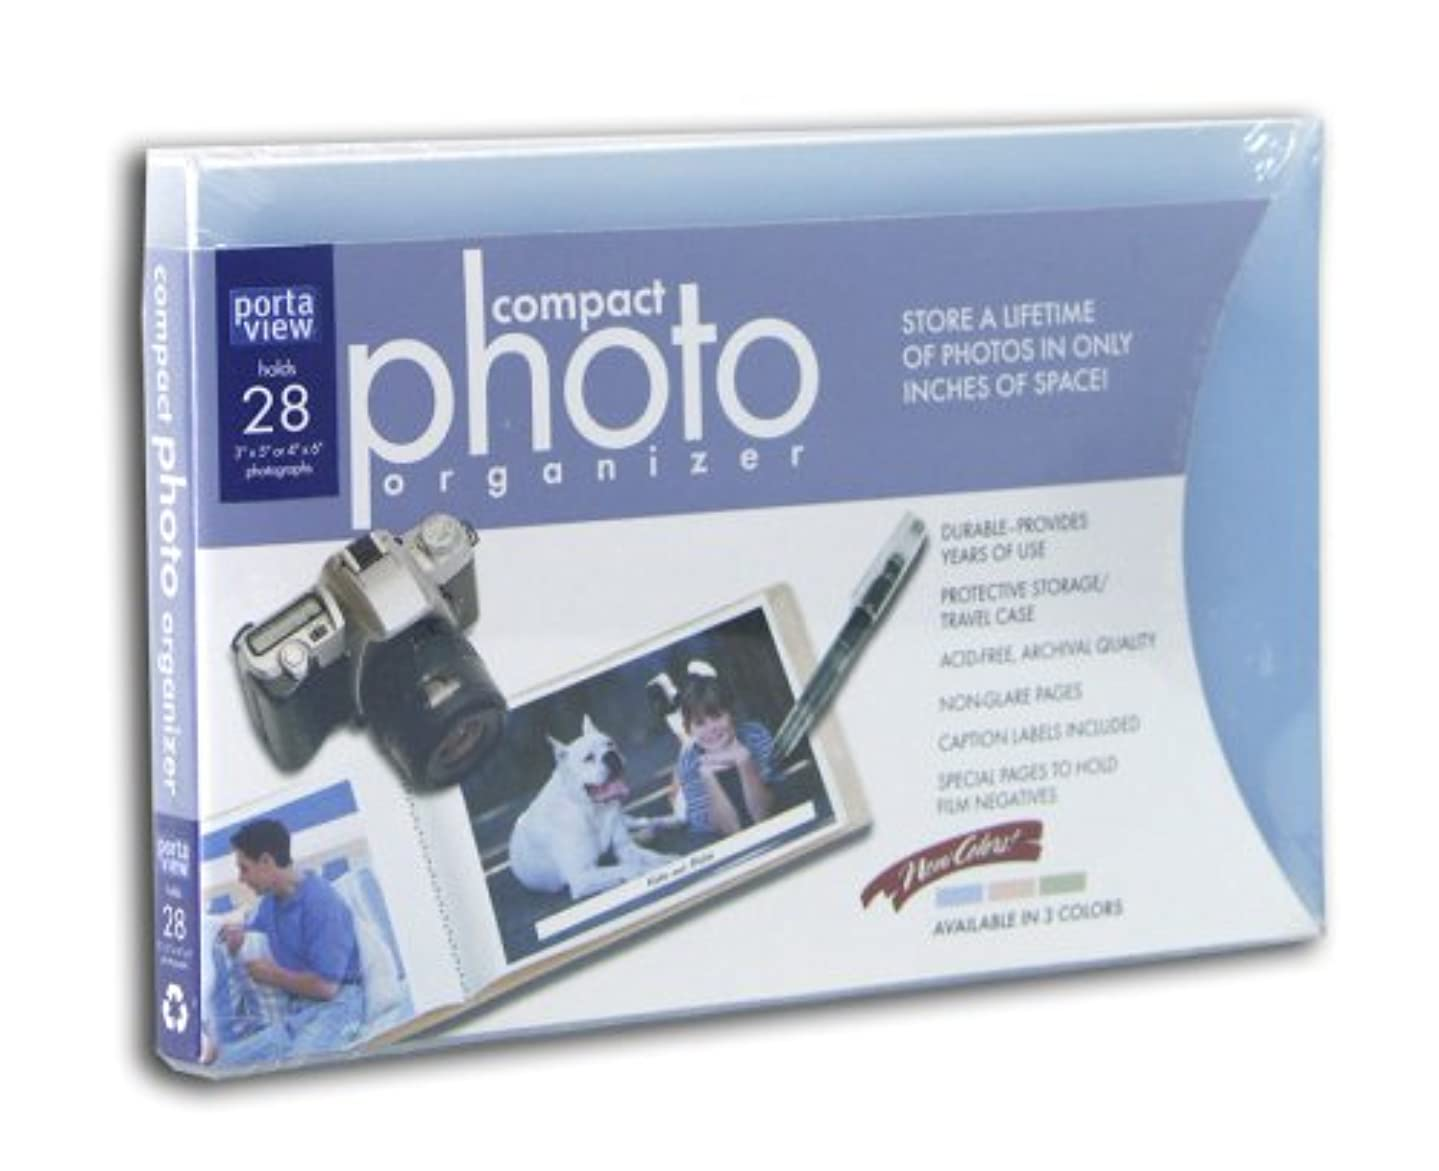 Portaview Compact Photo Organizer with Case 28 ct.